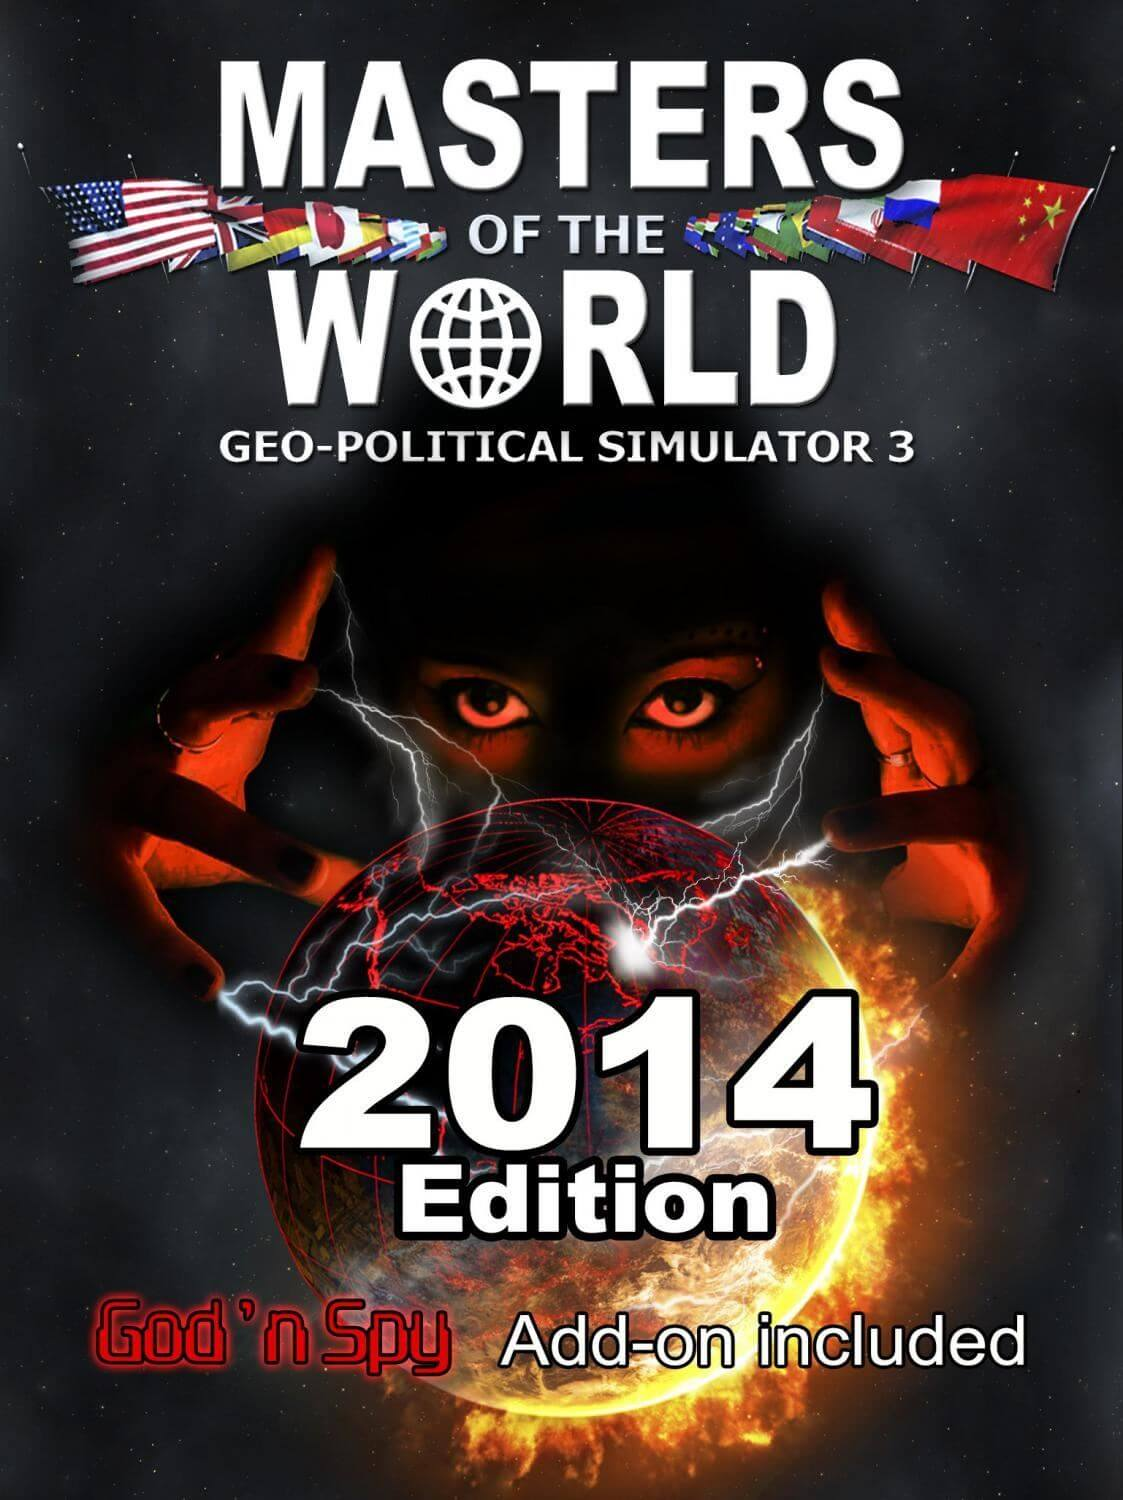 2014 Edition Add-on - Masters of the World DLC